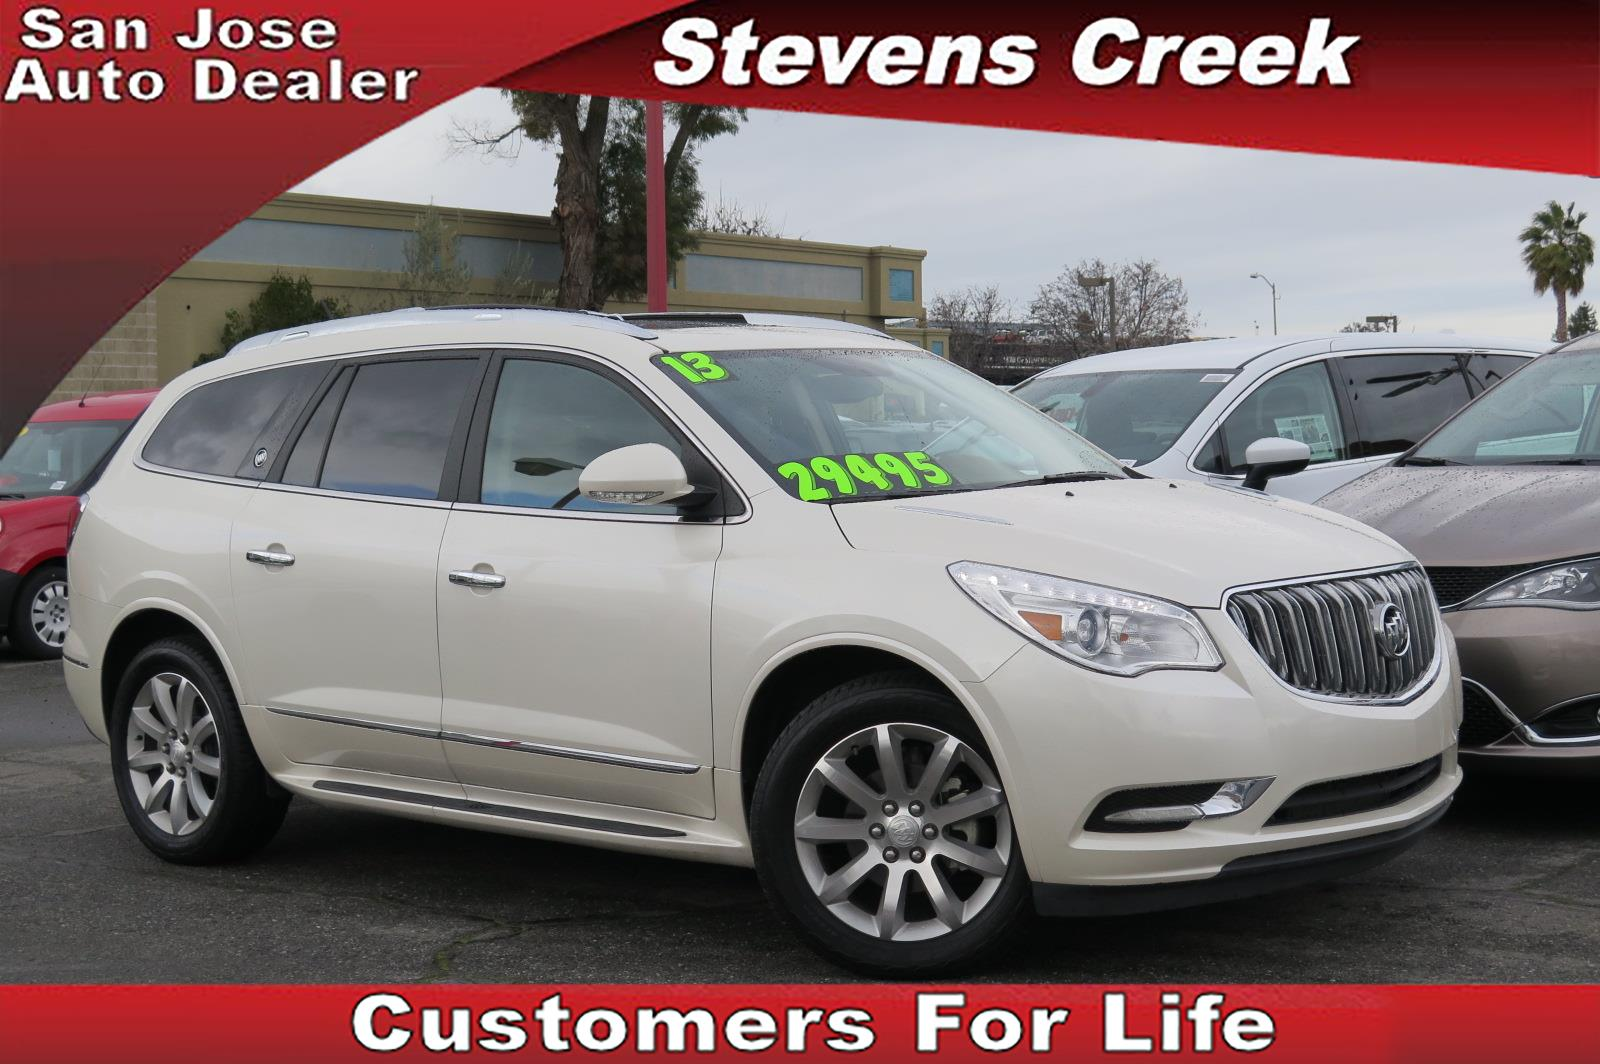 2013 BUICK ENCLAVE ENCLAVE white 36l v6 automatic great looking unit fully loaded premium spo